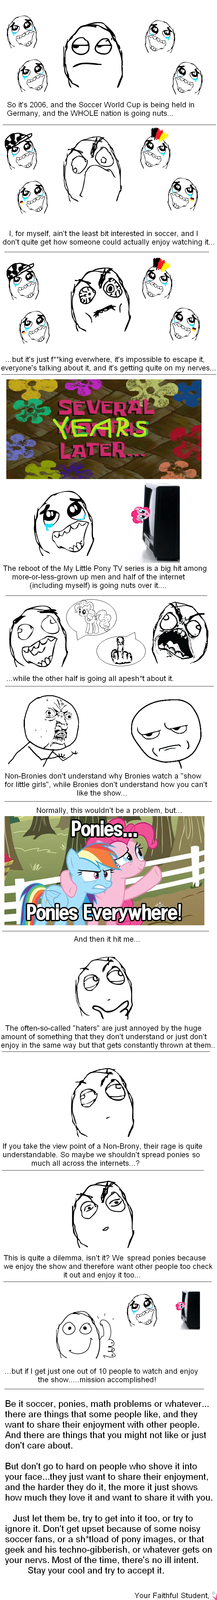 "The Big ""Ponies Everywhere"" Dilemma..."